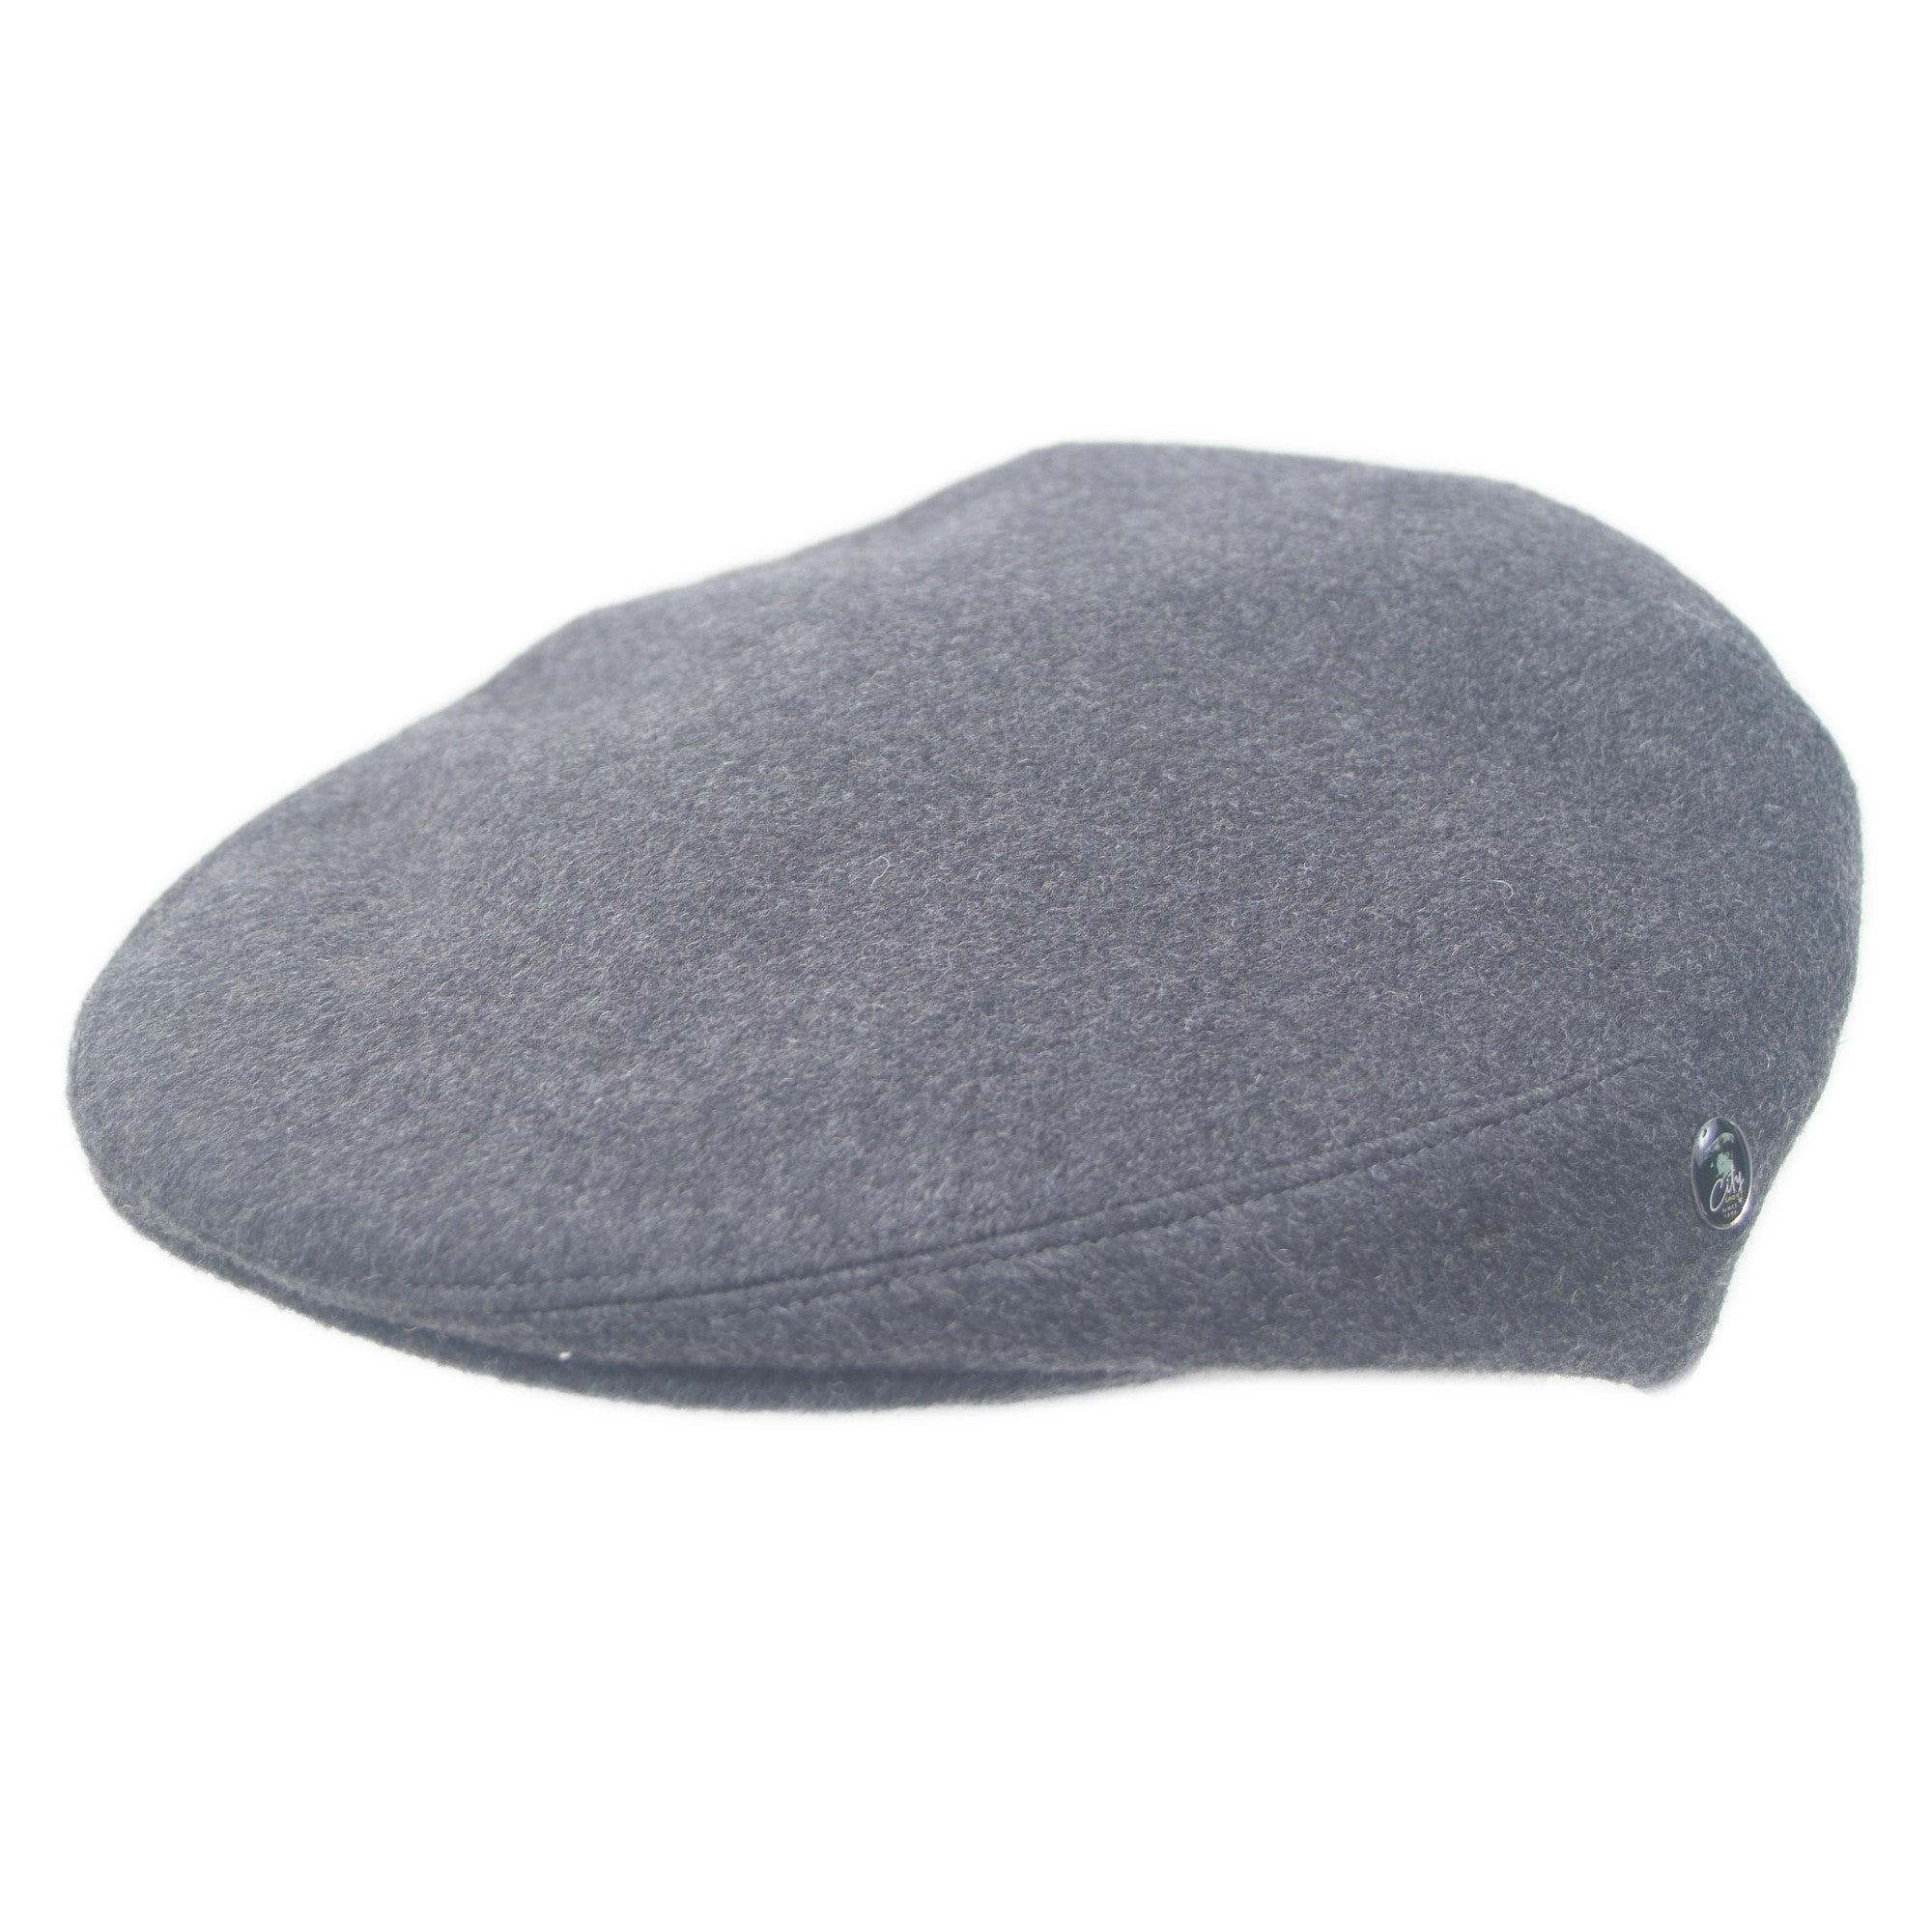 Black Mens Flat Cap | Pure Cashmere | by City Sport | buy now at The Cashmere Choice London